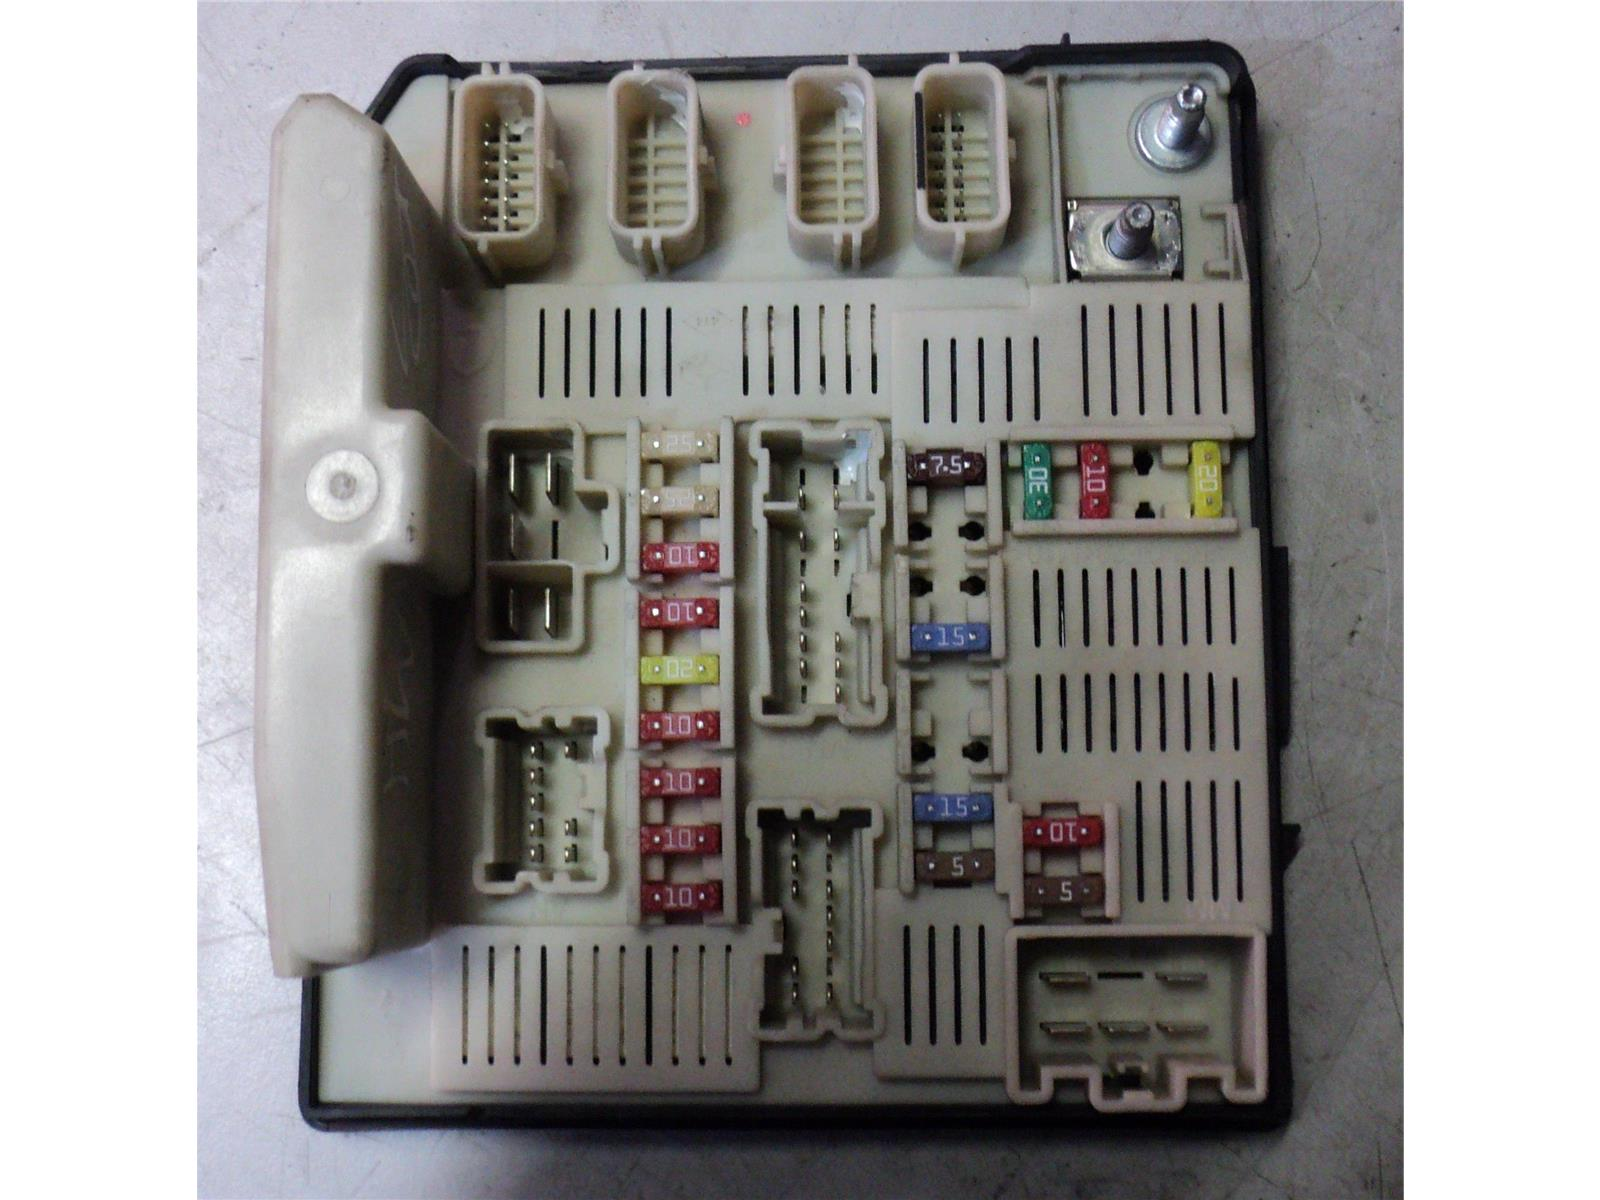 Renault Megane Fuse Box 2006 Schematic Diagrams Scenic Open For Sale Electrical Work Wiring Diagram U2022 Toyota Rav4